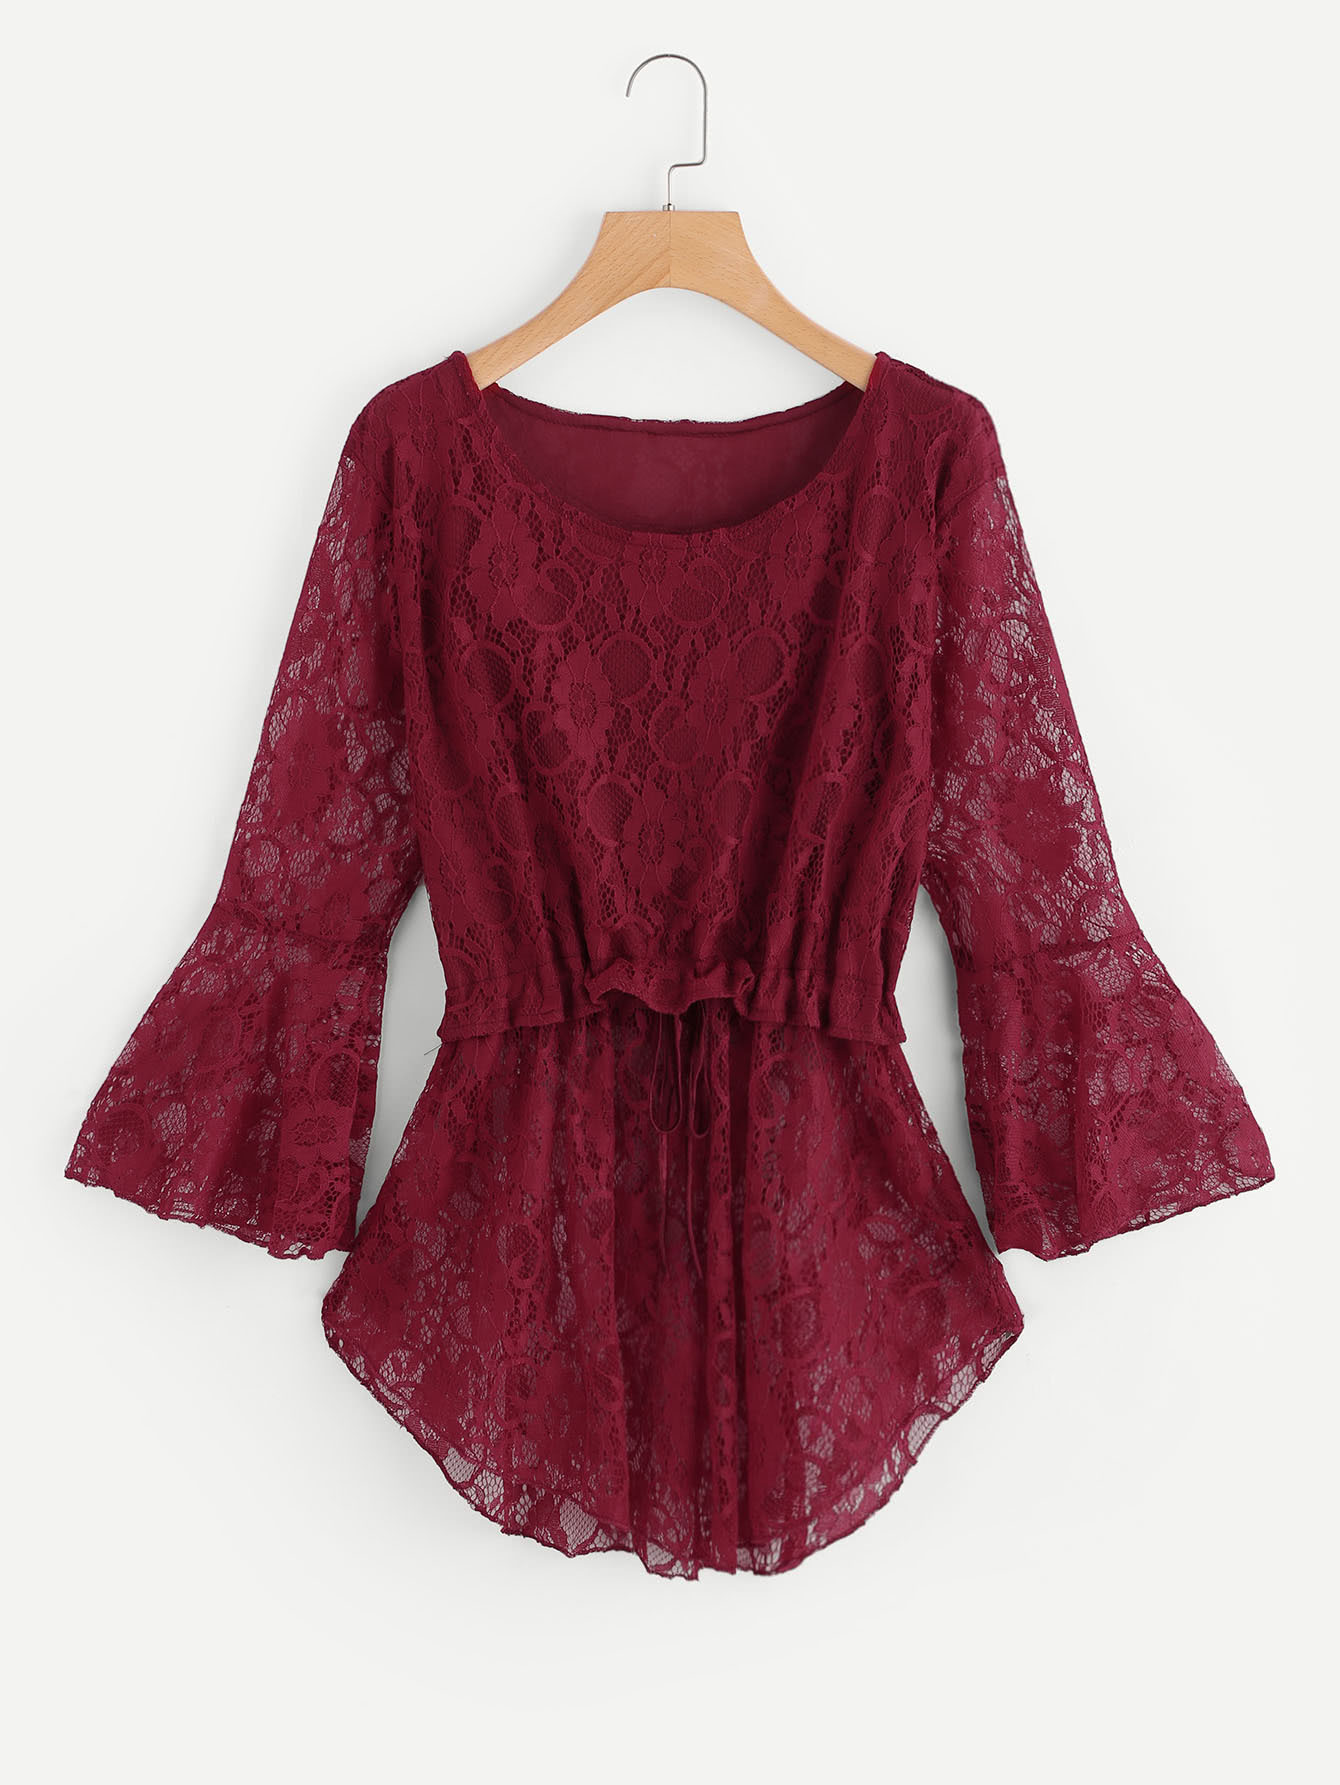 Floral Lace Flute Sleeve Drawstring Pep Hem Blouse ruched sleeve dolphin hem floral blouse